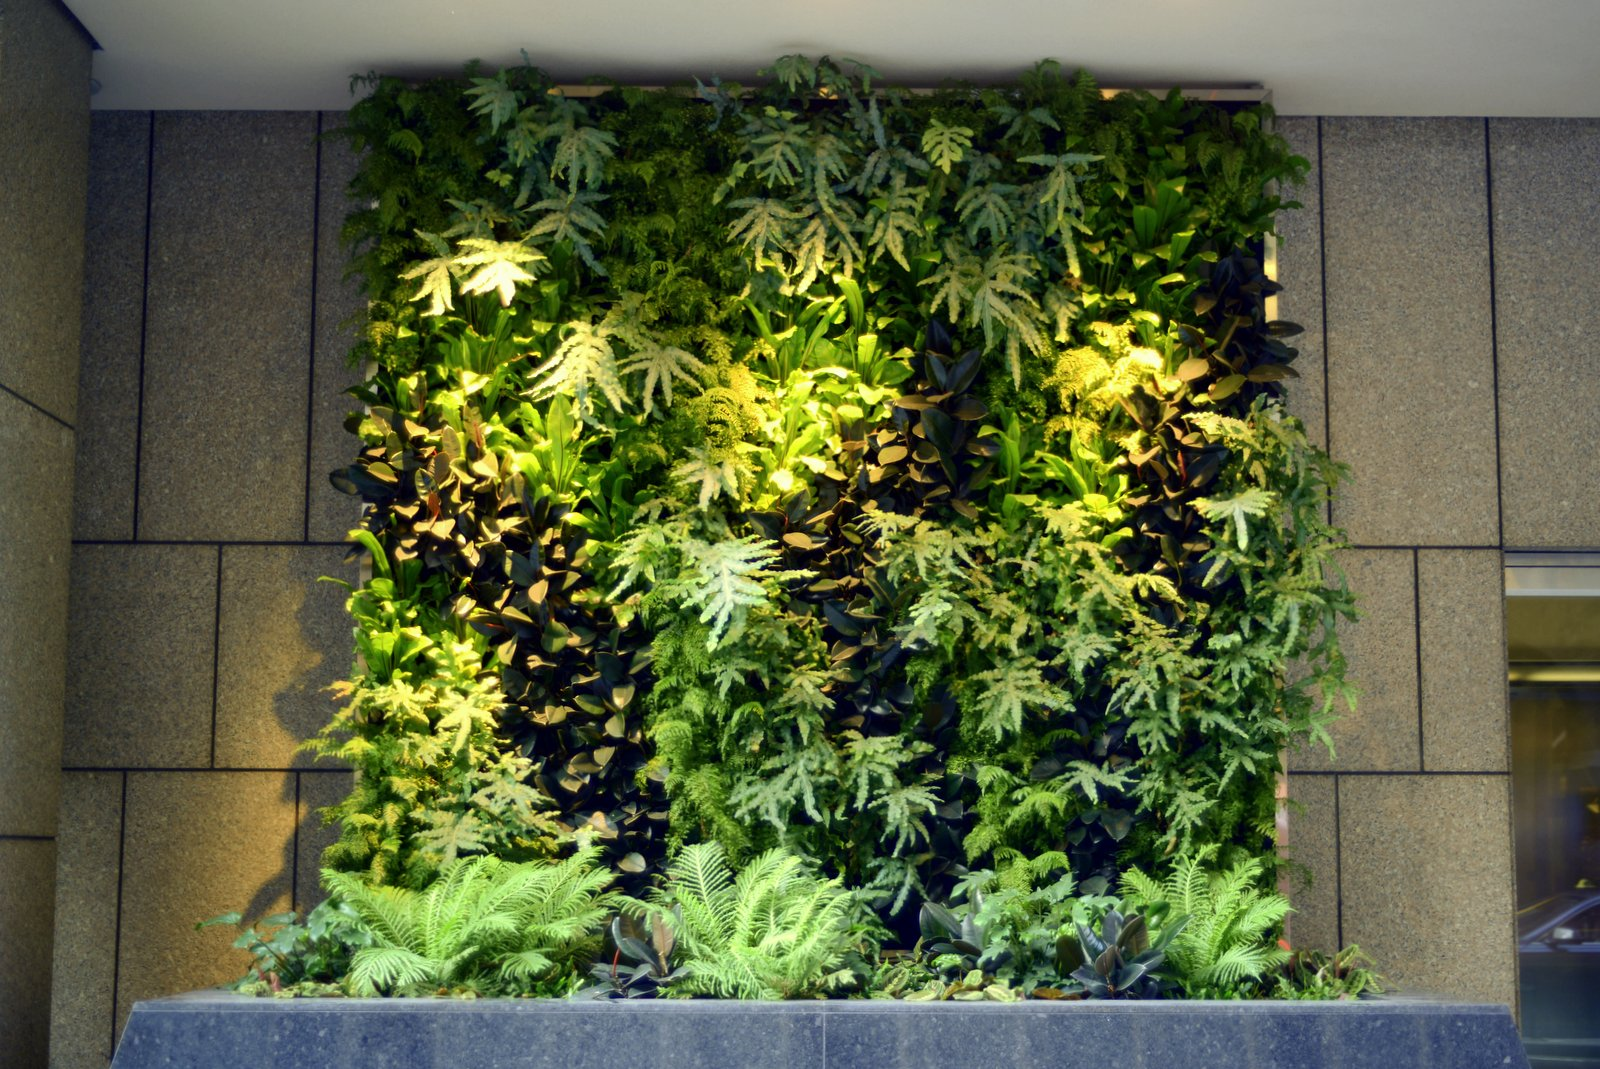 plants on walls vertical garden systems 6 months mature at 100 pine san francisco